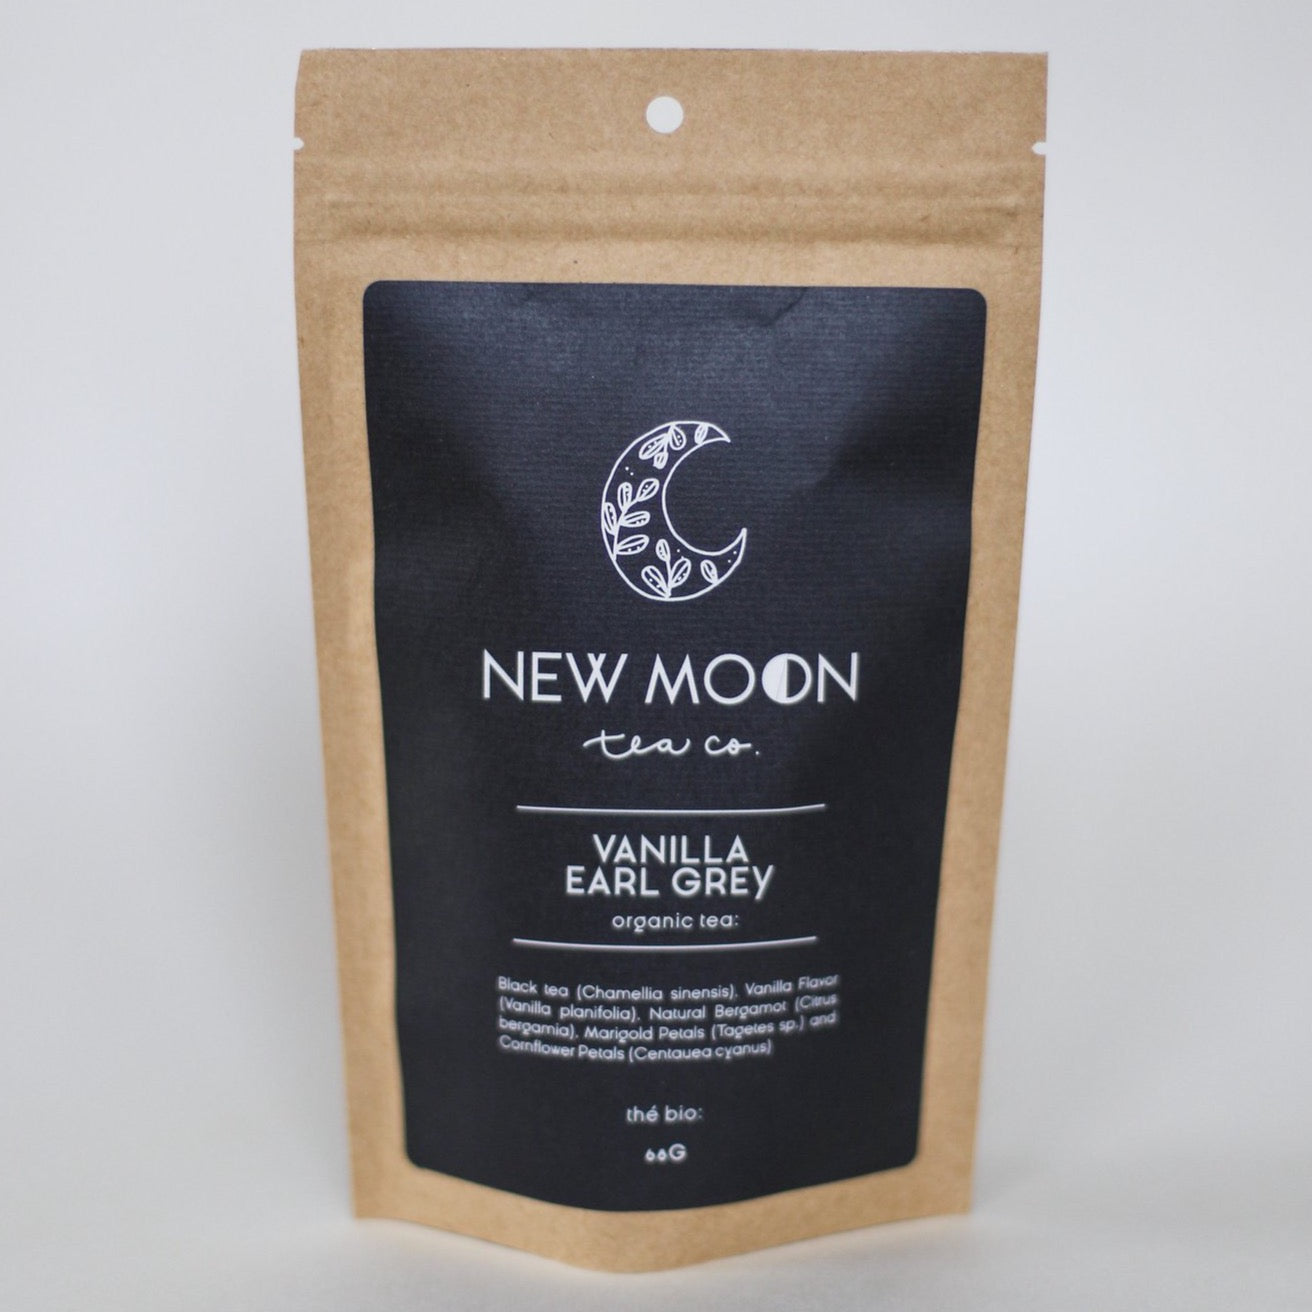 New Moon Tea Co. Vanilla Earl Grey Tea